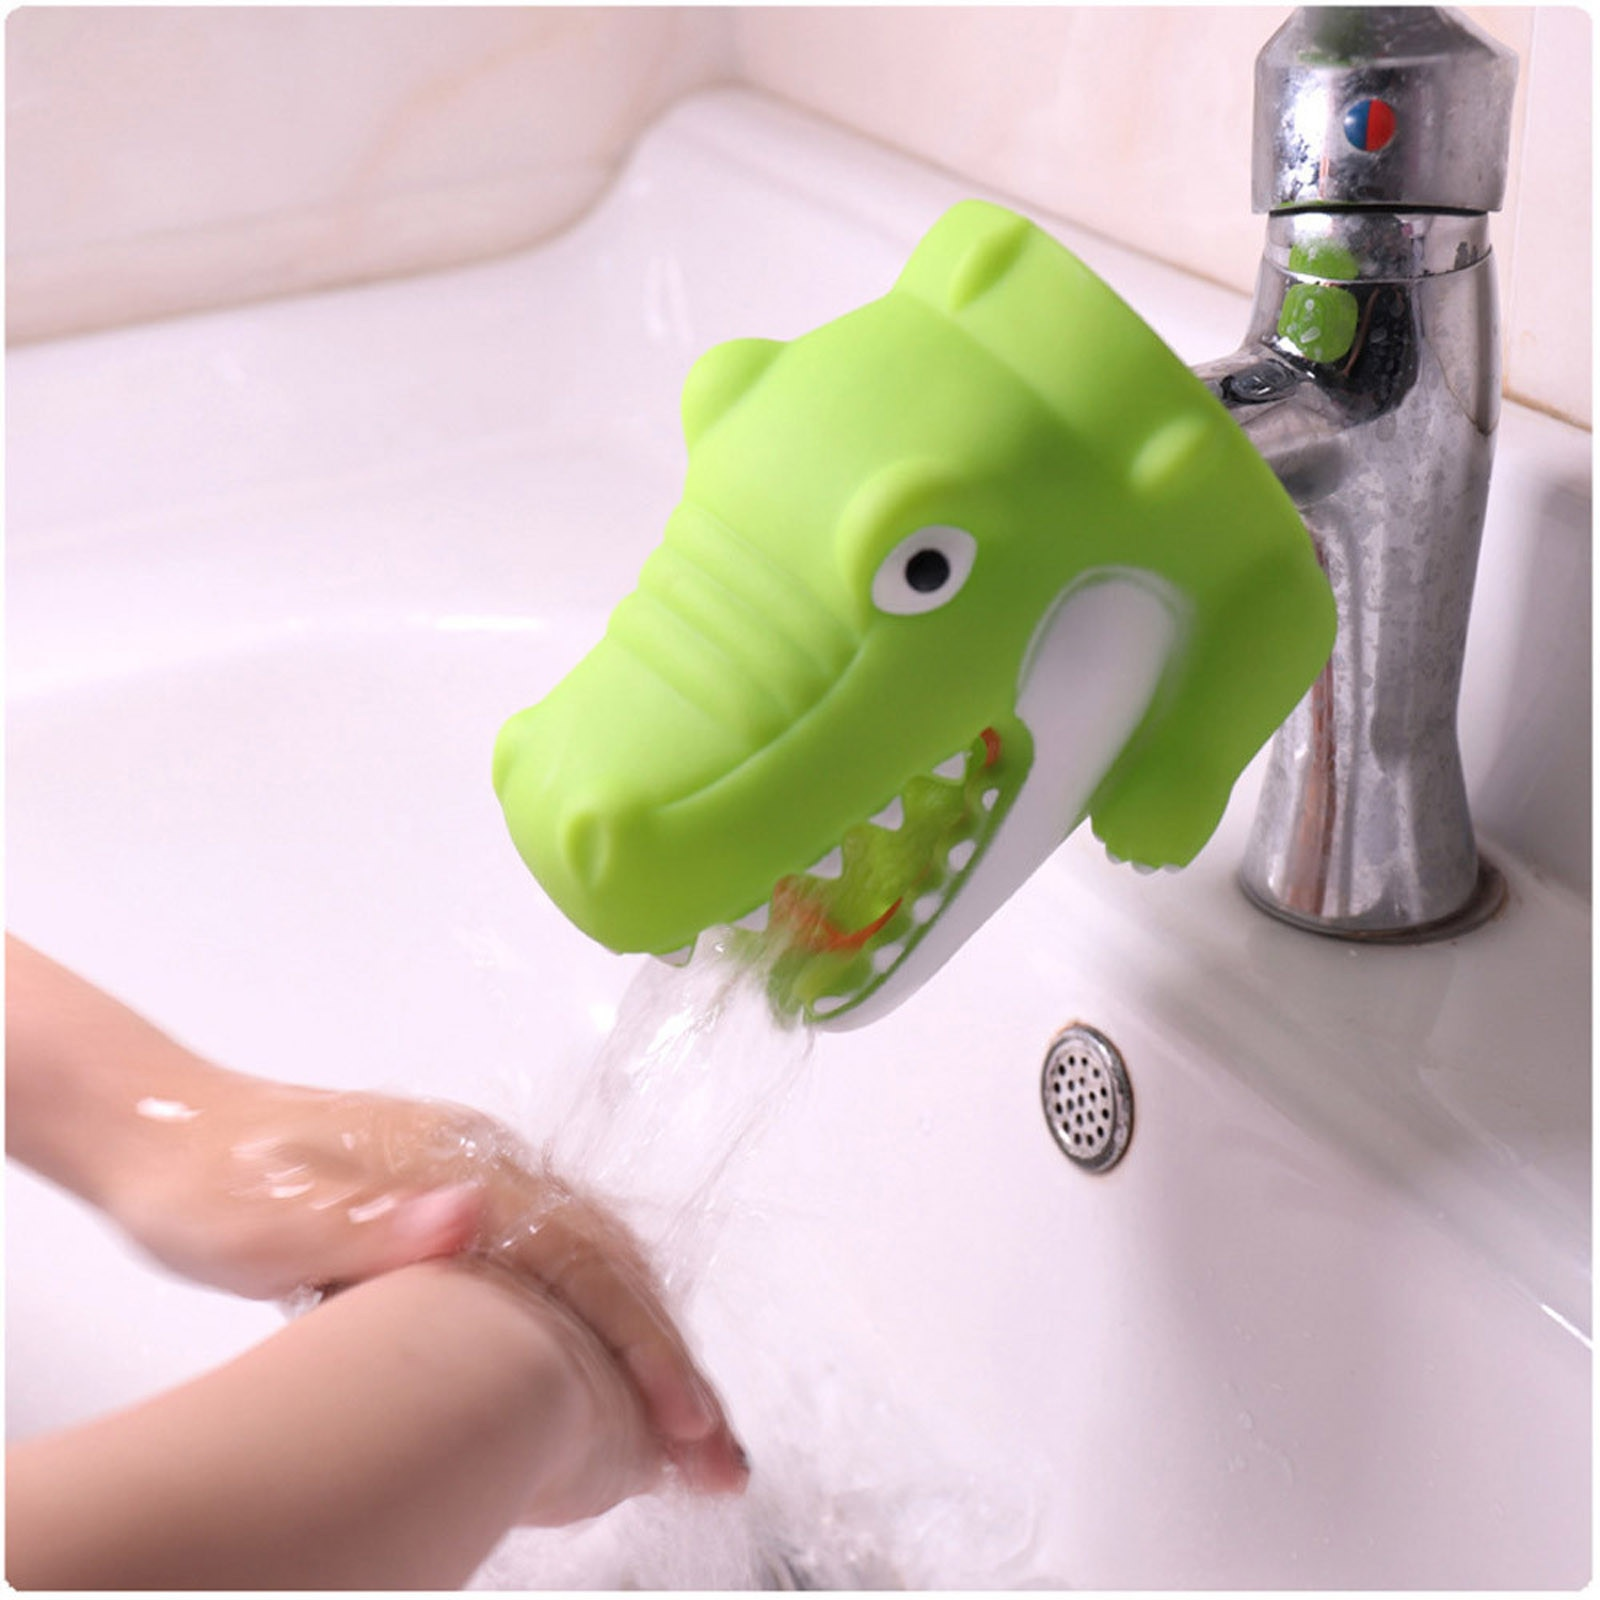 1pc Kitchen Bathroom Supplies Faucet Extender Sink Handle Extender Child Hand-washing Easily Sink Faucet Extender Accessories enlarge